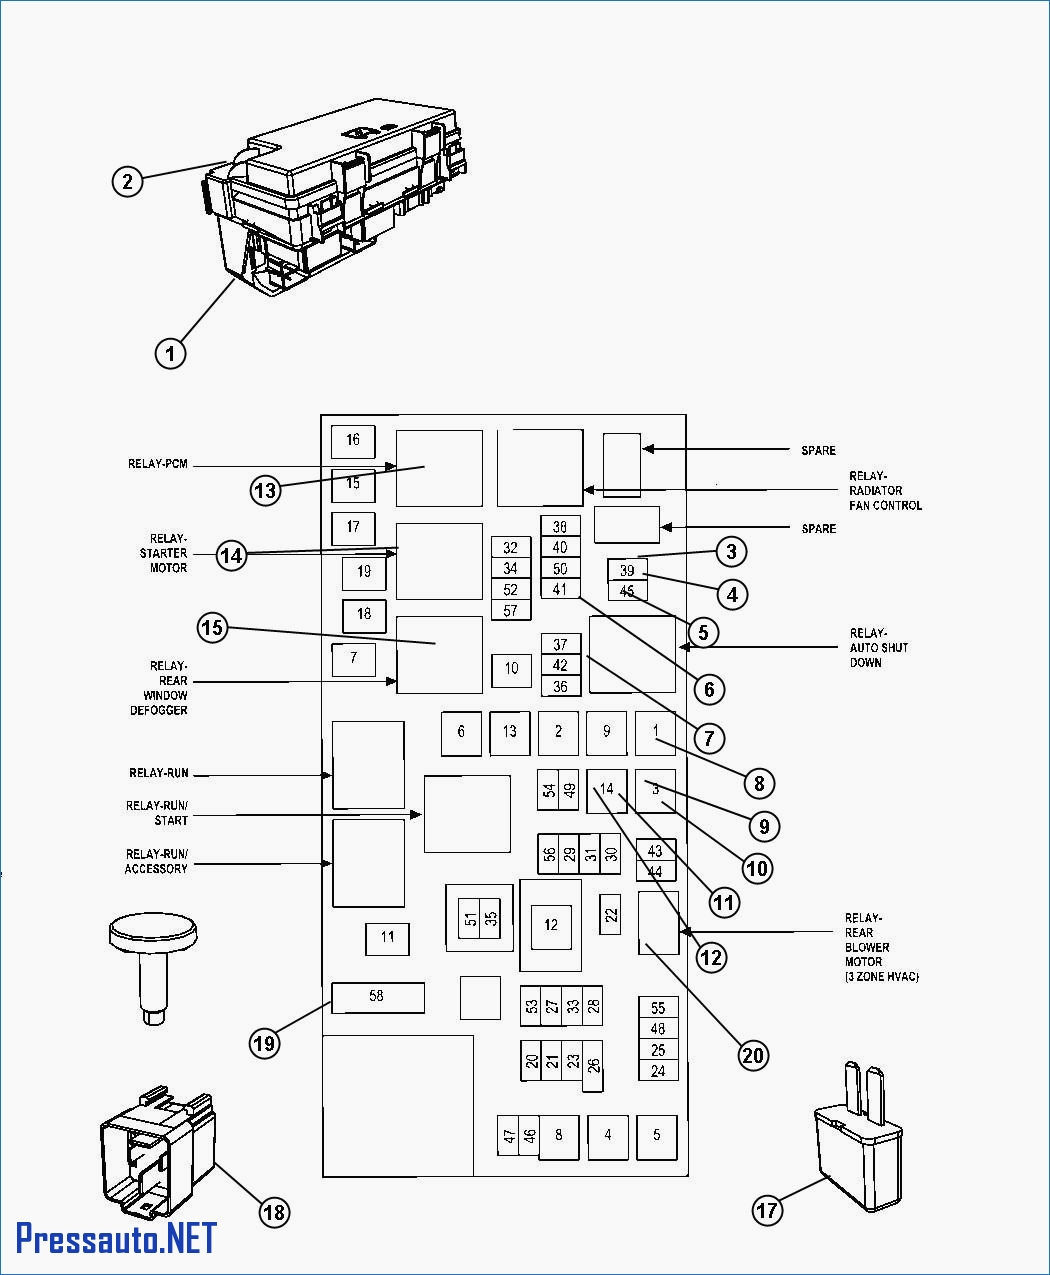 1969 Dodge Charger Drawing At Free For Personal Tail Light Wiring Diagram 1050x1275 2008 Ignition